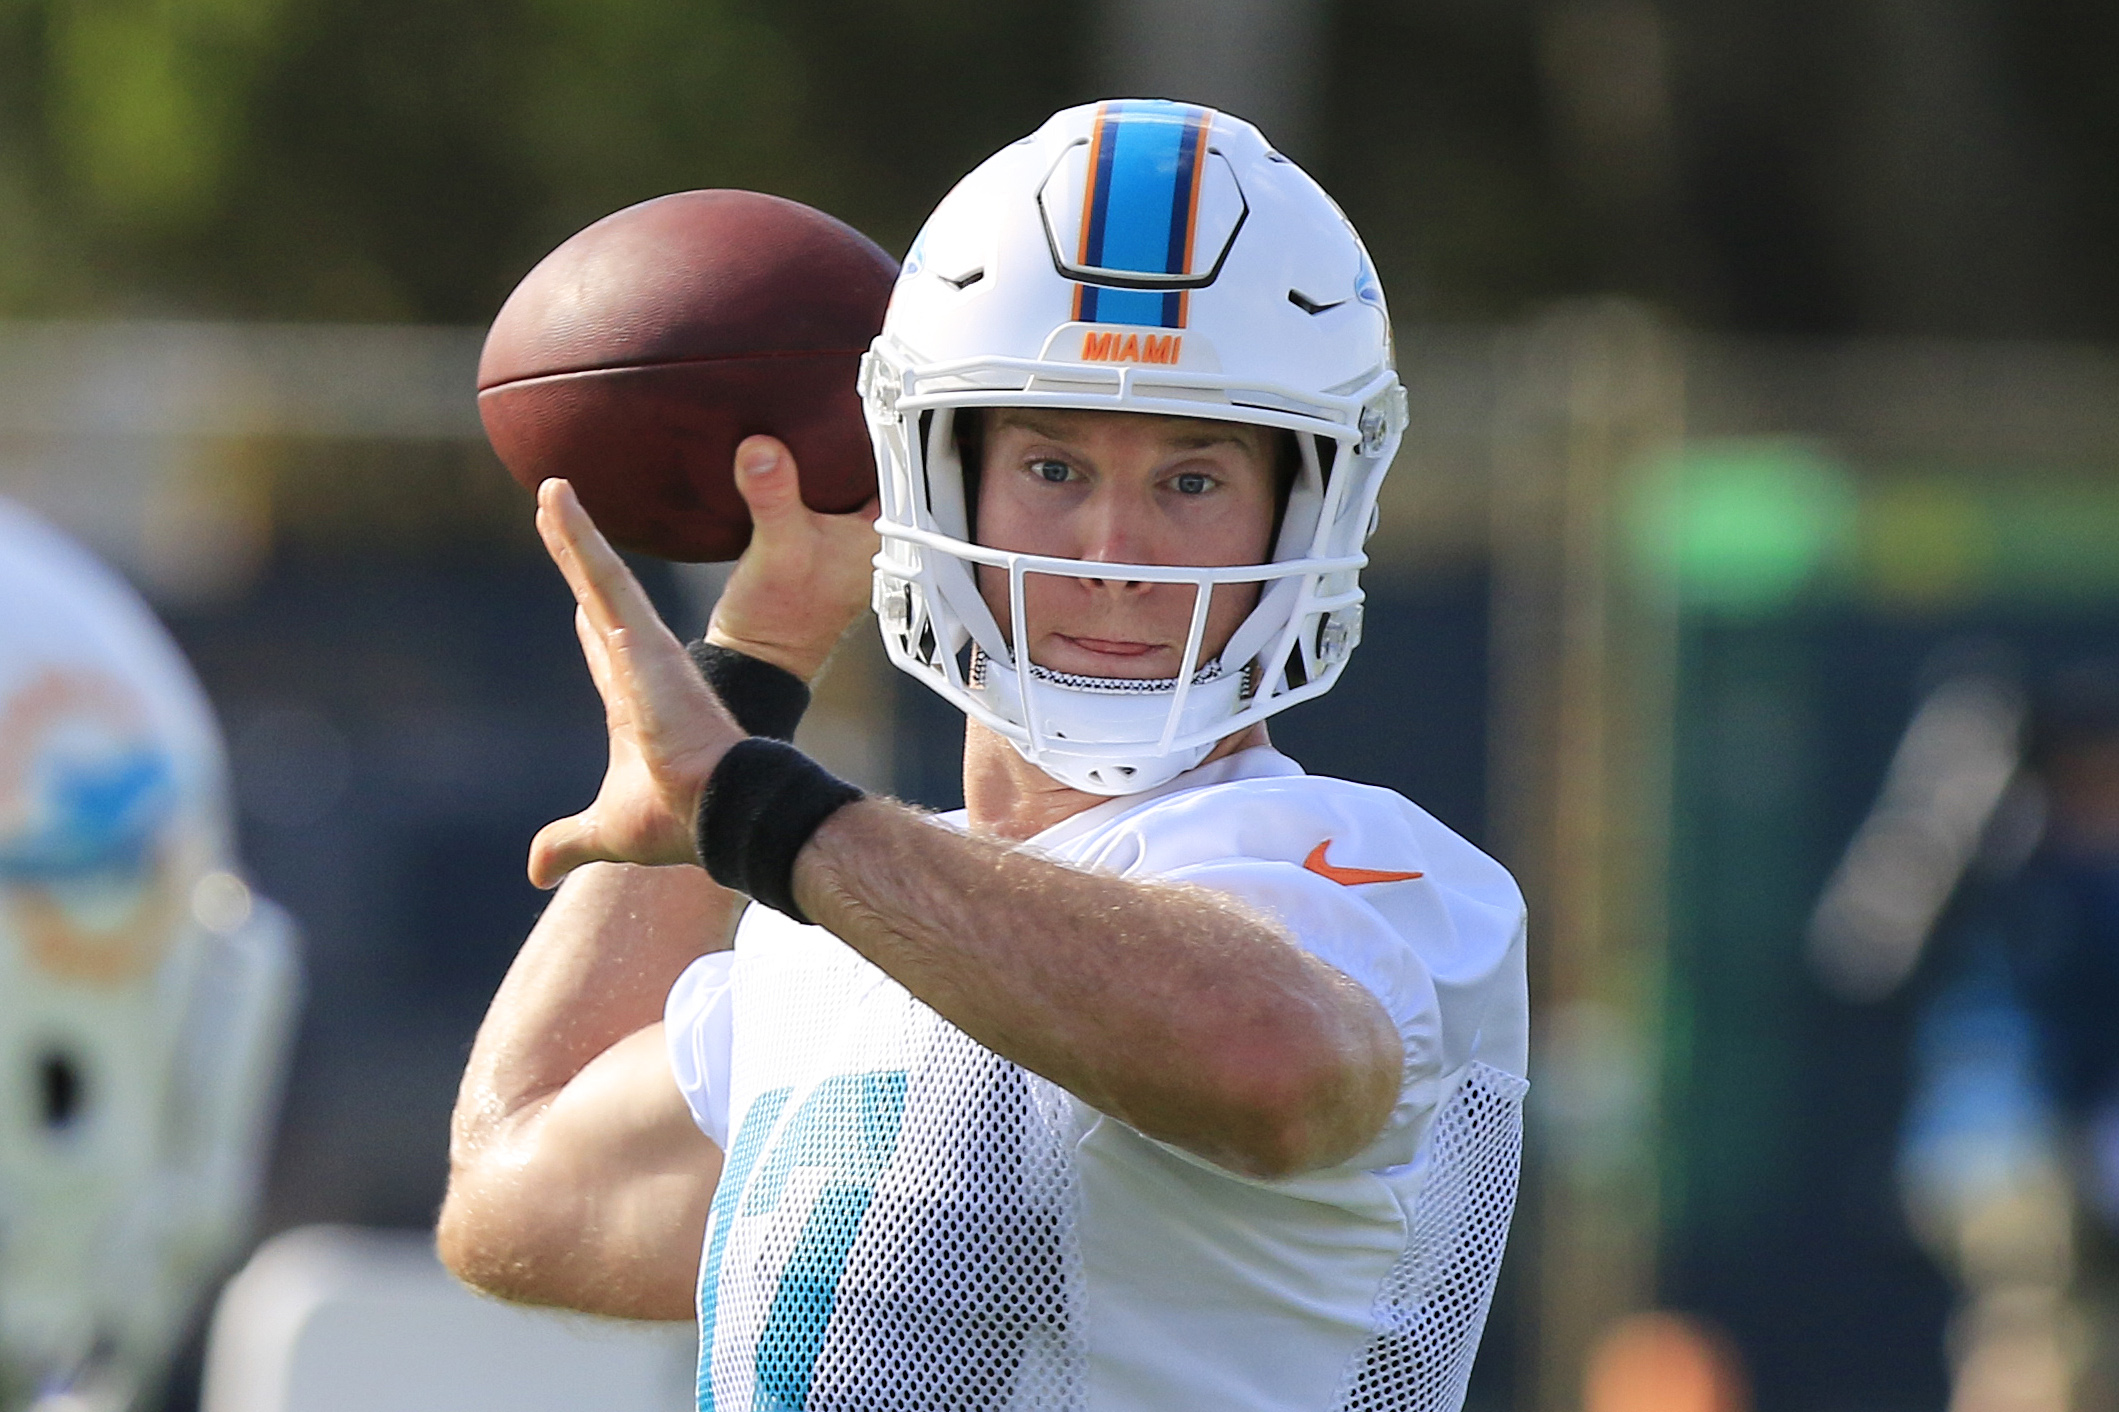 Miami Dolphins quarterback Ryan Tannehill (17) makes a pass to Miami Dolphins running back Jay Ajayi (23) during the first day of Miami Dolphins training camp held at the Dolphins Training Facility on Friday, July 29, 2016.